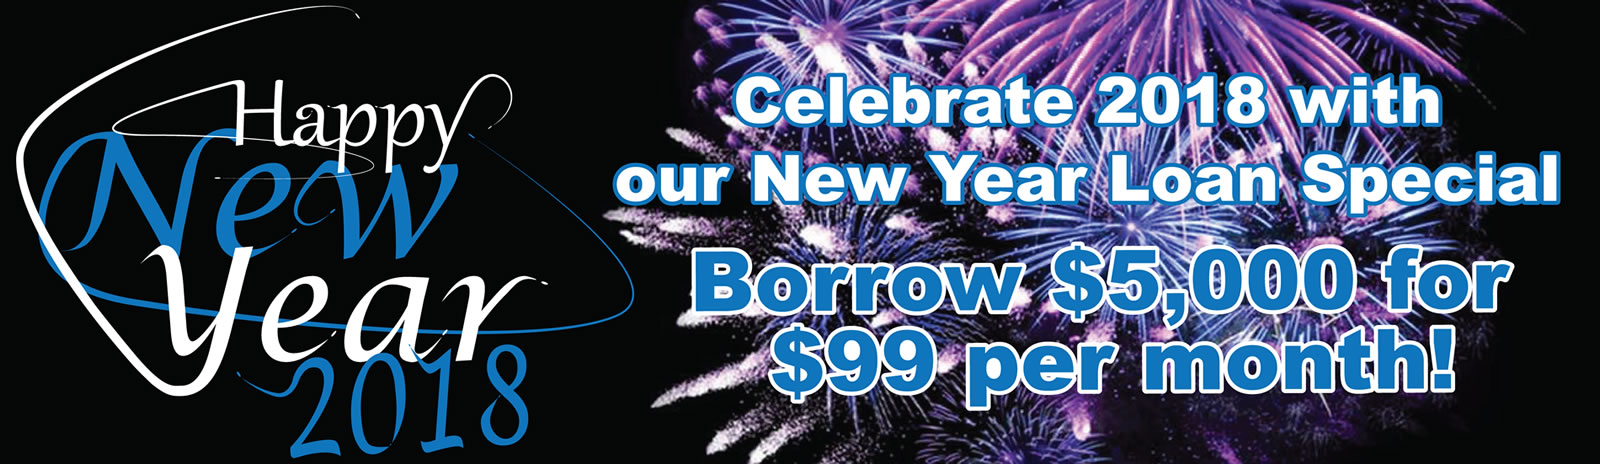 Celebrate 2018 with our new Year Loan Special $5K for $99 per month.